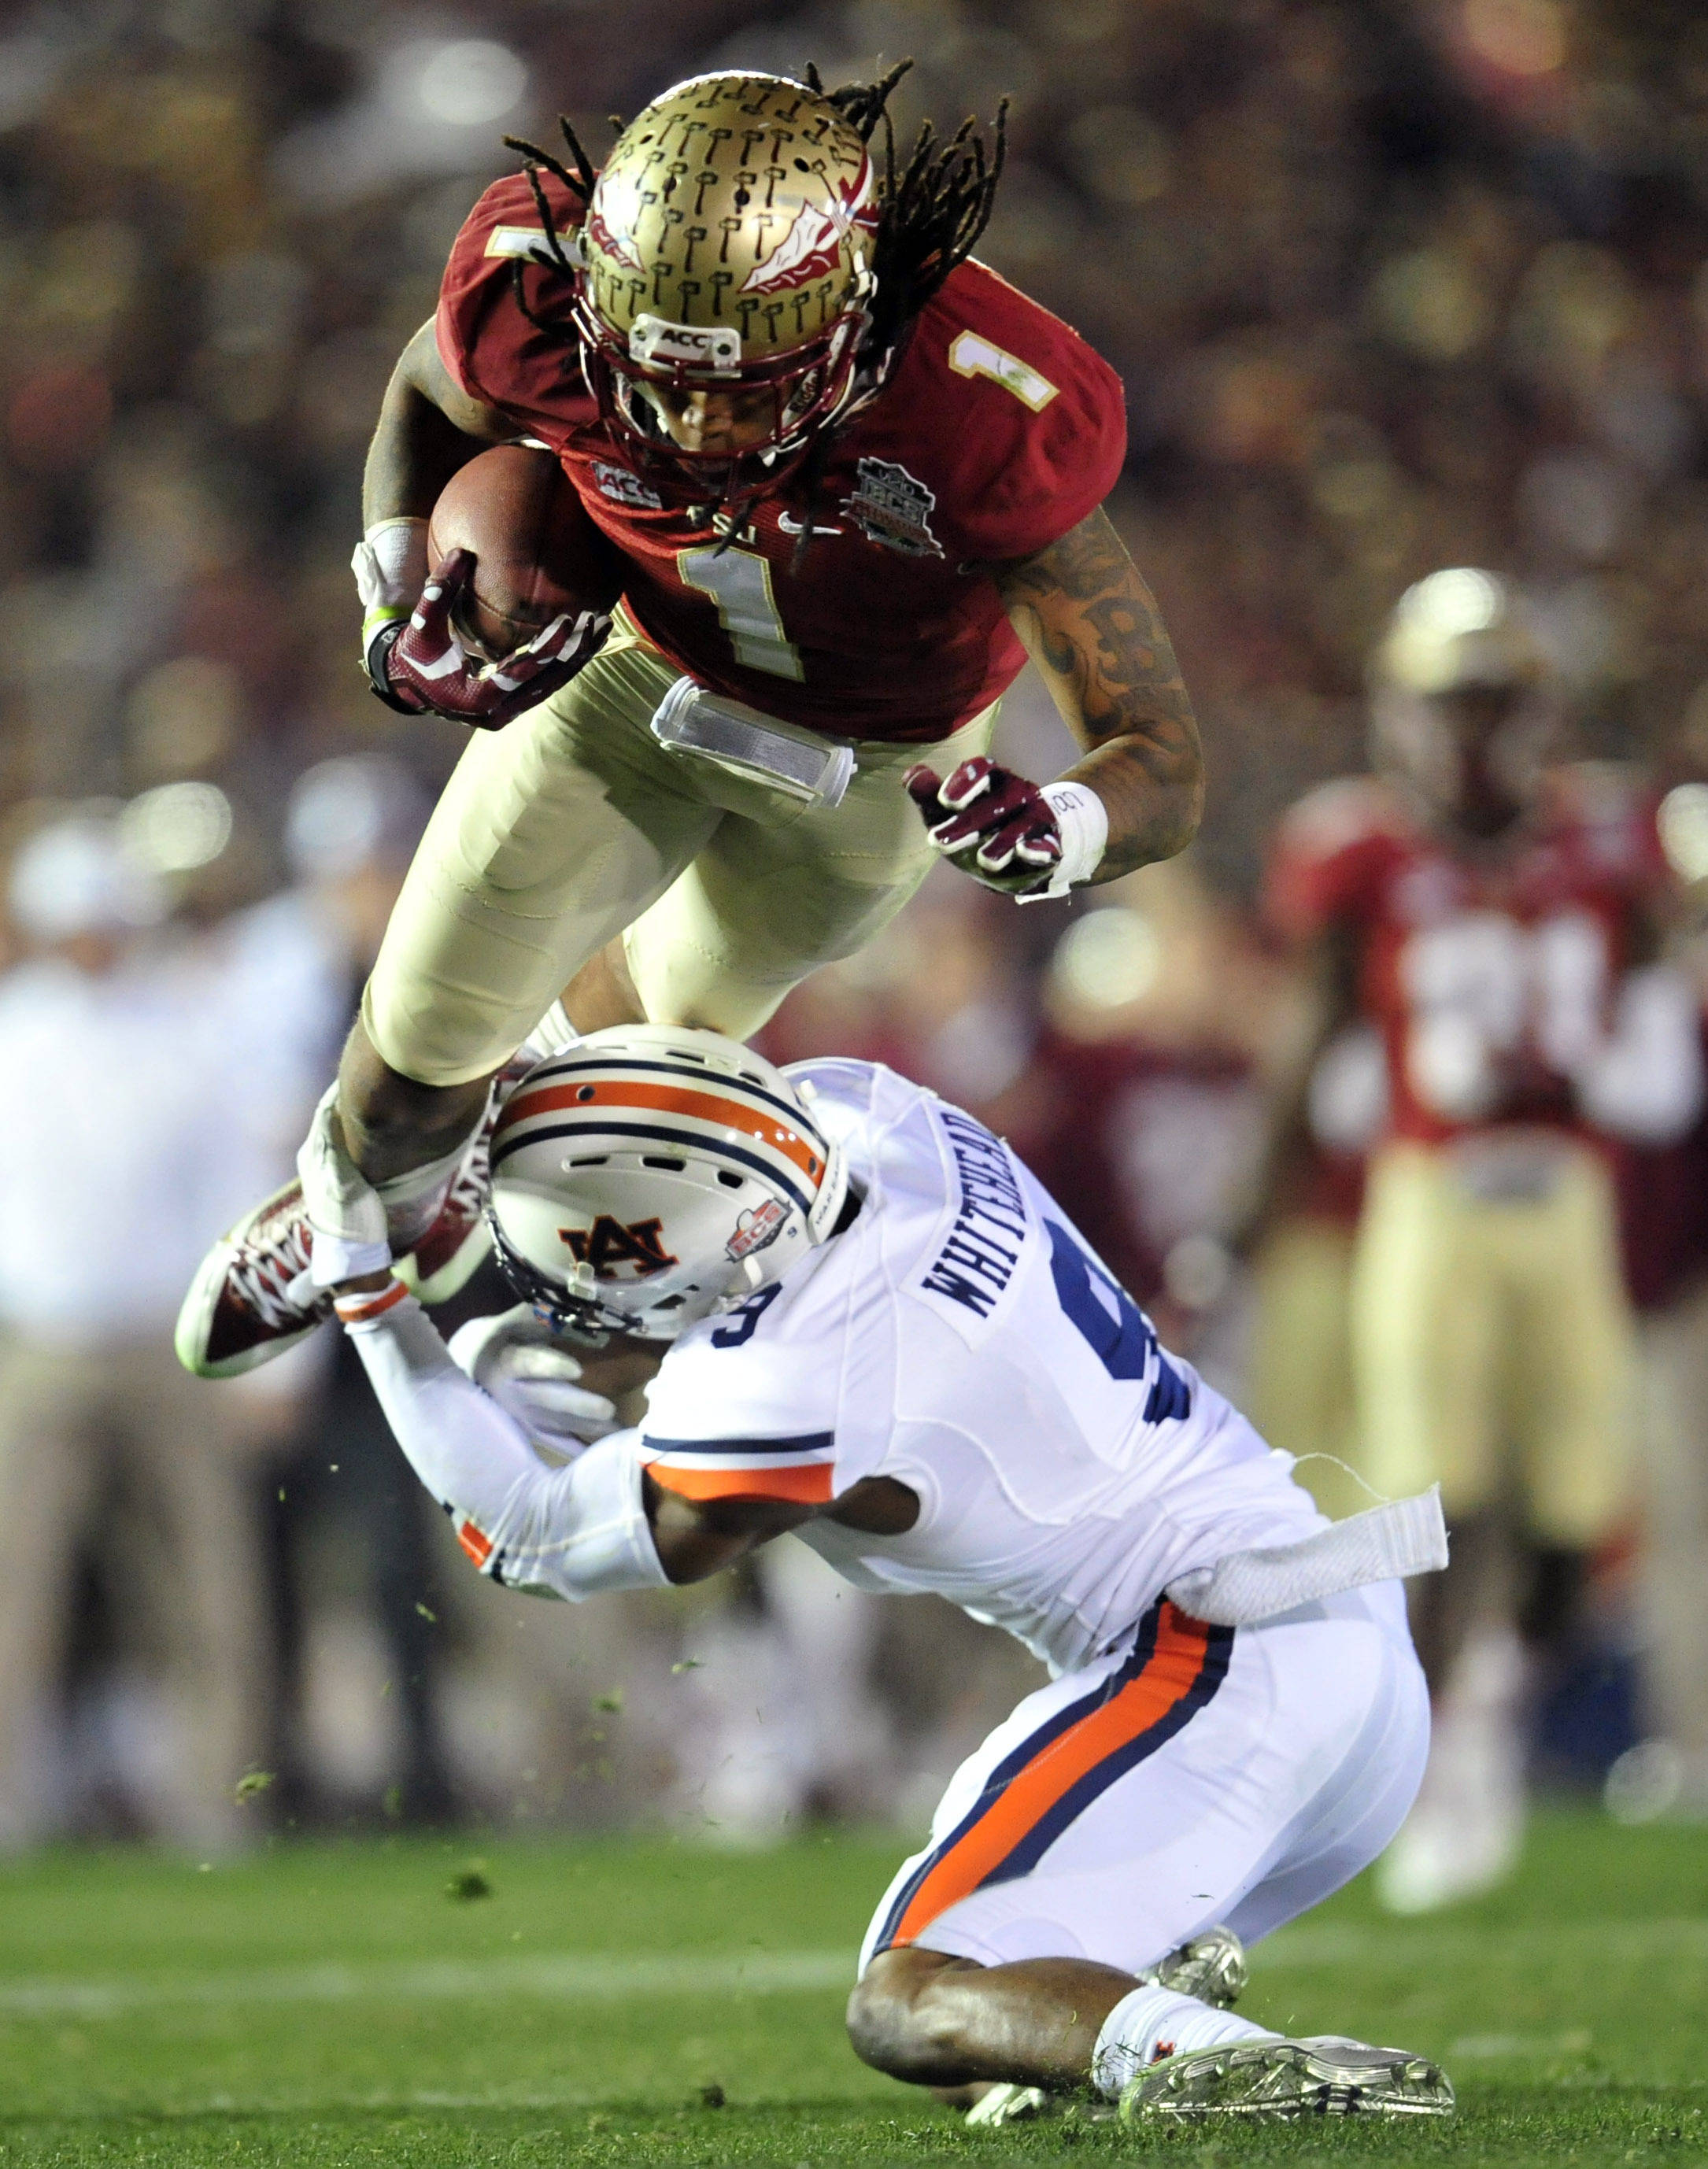 Jan 6, 2014; Pasadena, CA, USA; Florida State Seminoles wide receiver Kelvin Benjamin (1) is upended by Auburn Tigers defensive back Jermaine Whitehead (9) during the second half of the 2014 BCS National Championship game at the Rose Bowl.  Mandatory Credit: Gary A. Vasquez-USA TODAY Sports